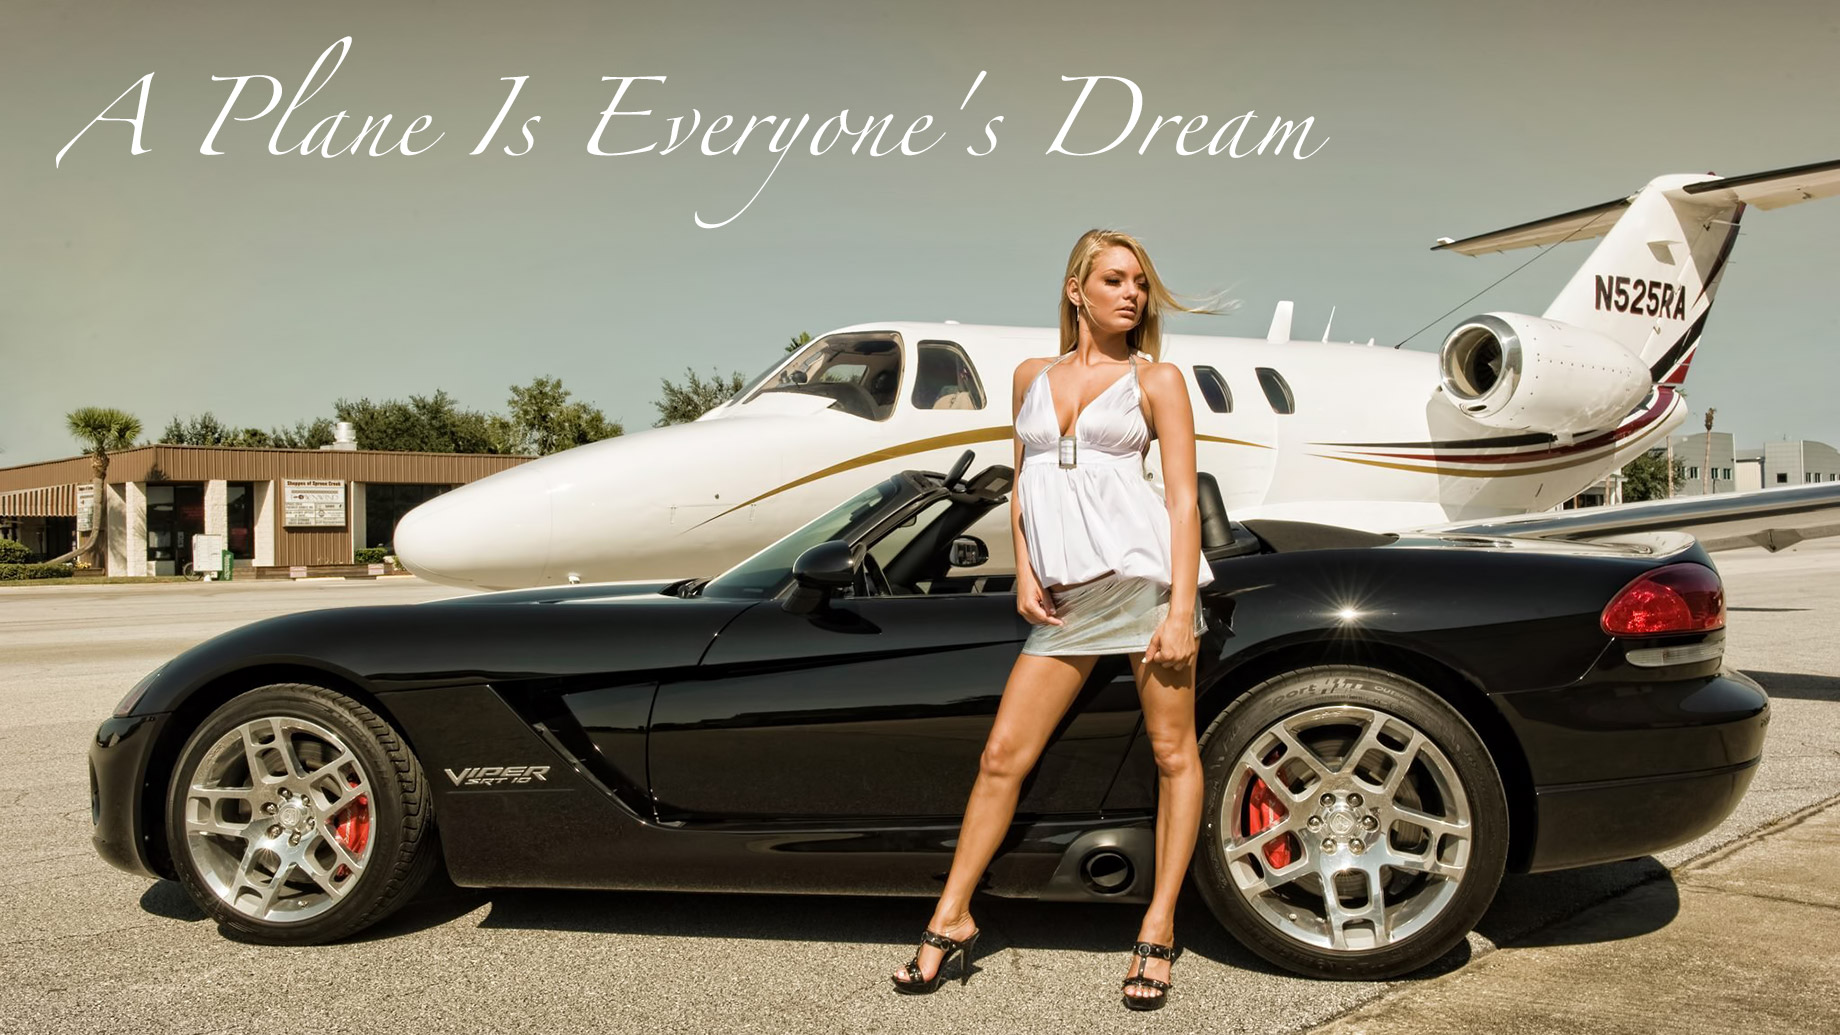 A Plane Is Everyone's Dream - Make It Your Reality